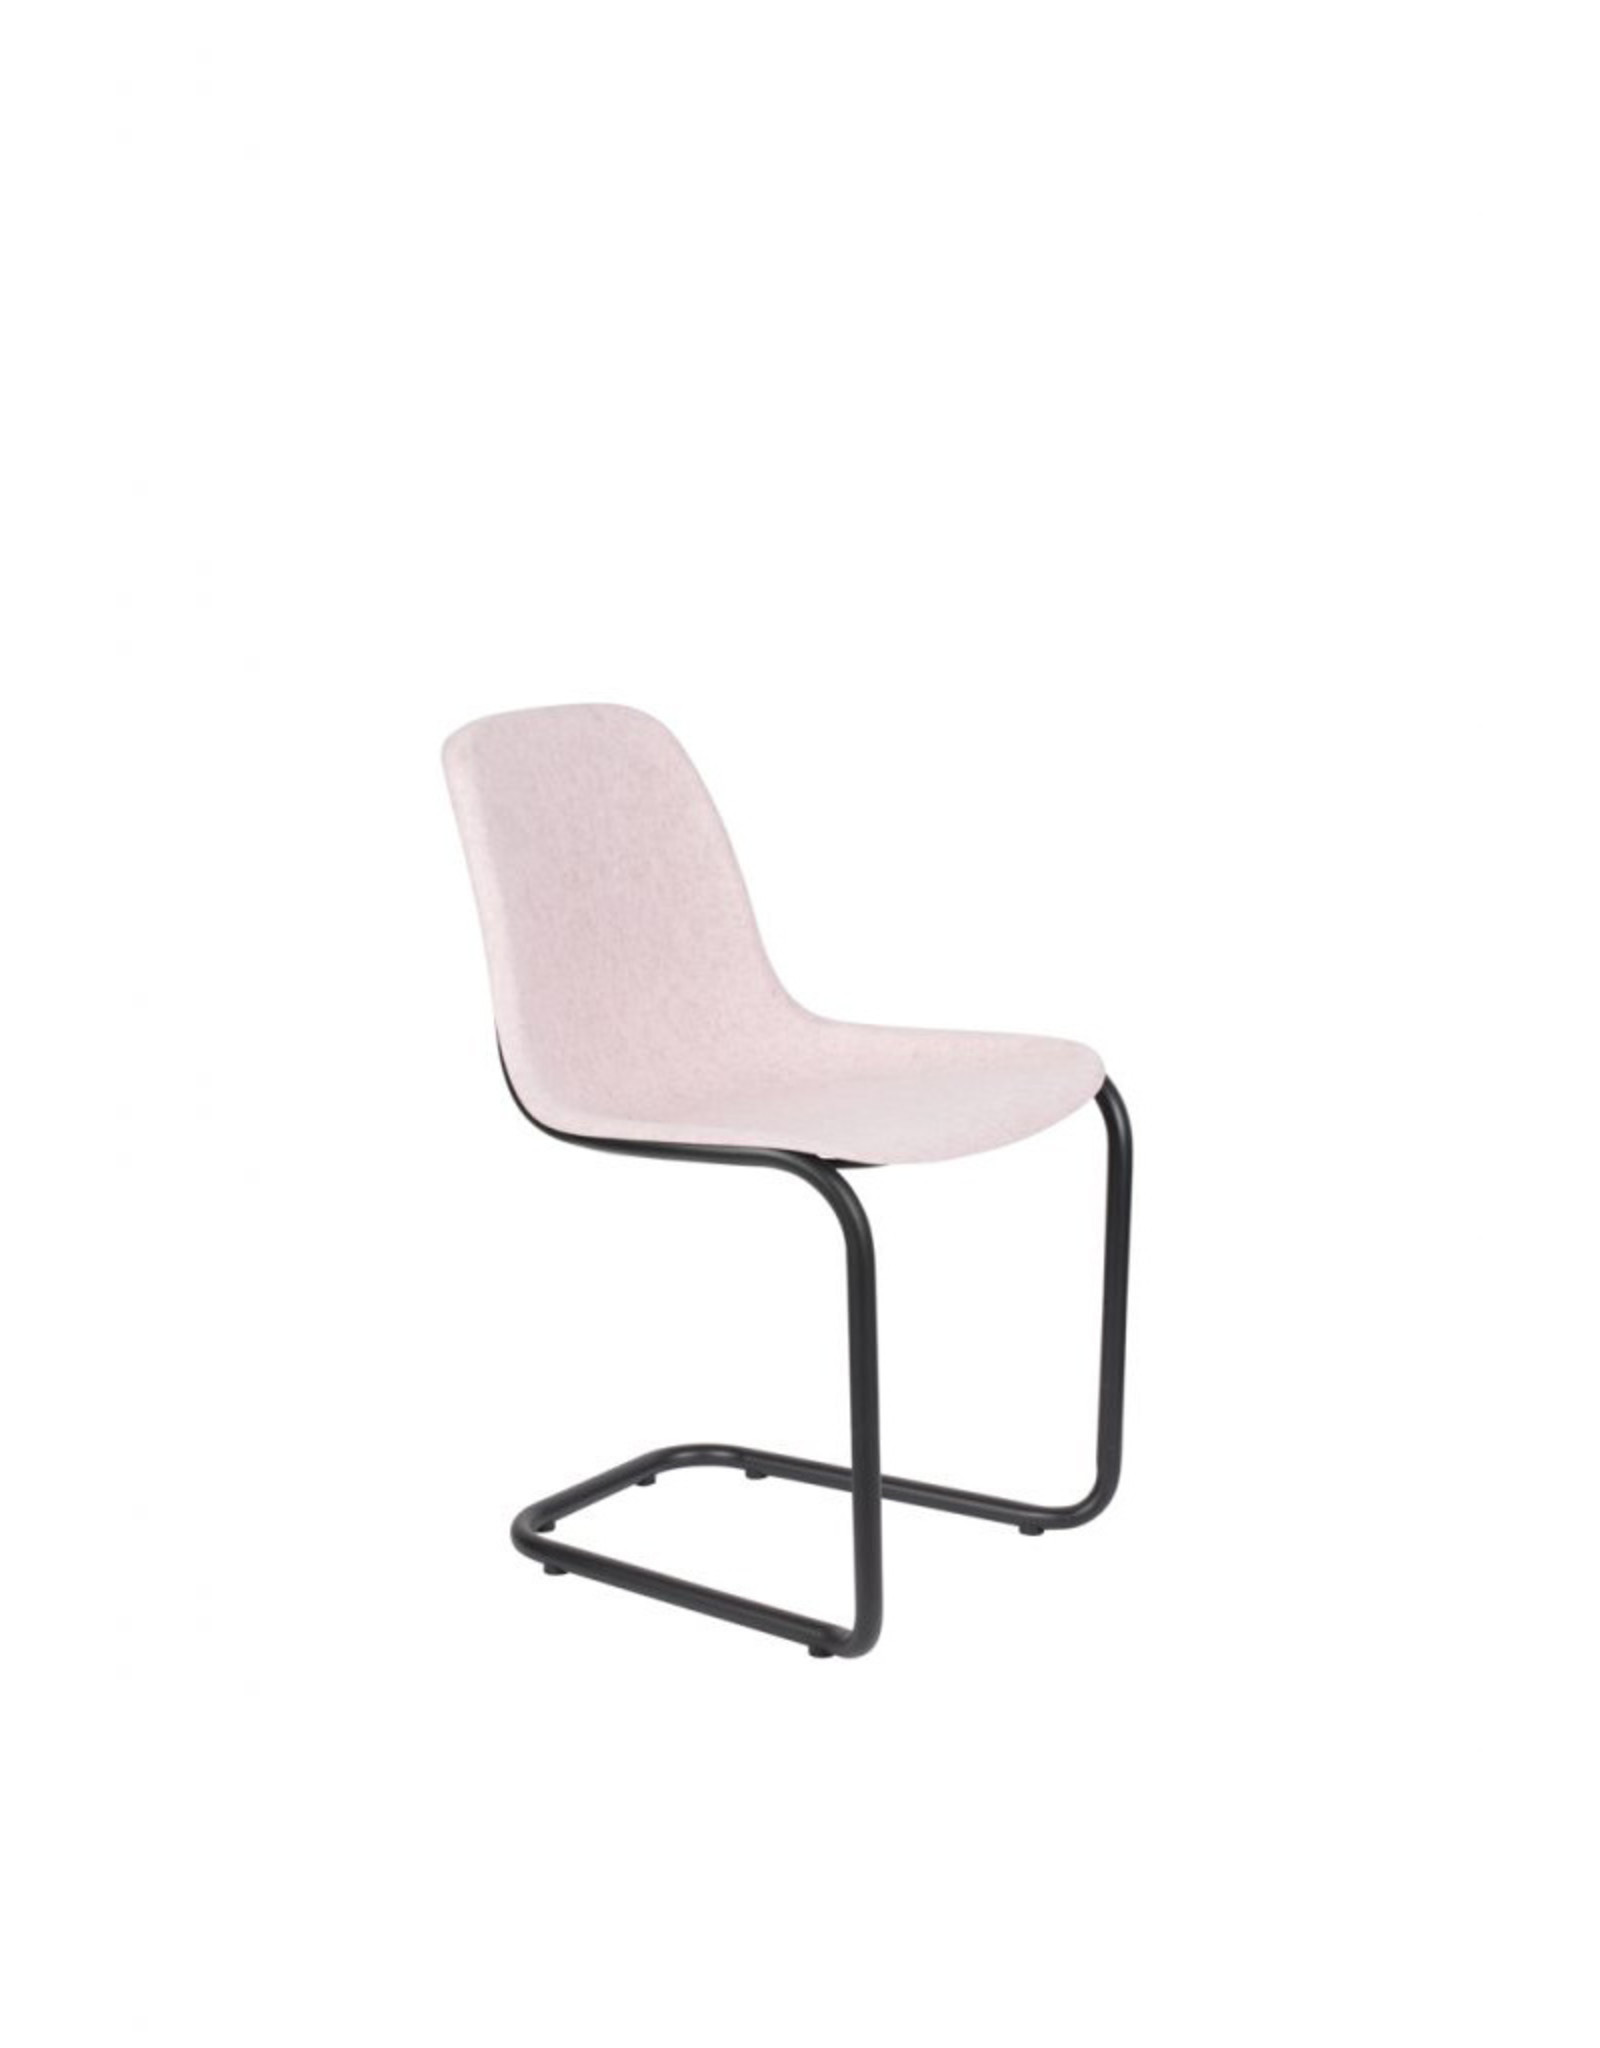 ZUIVER BV Thirsty Chair (set of 2)